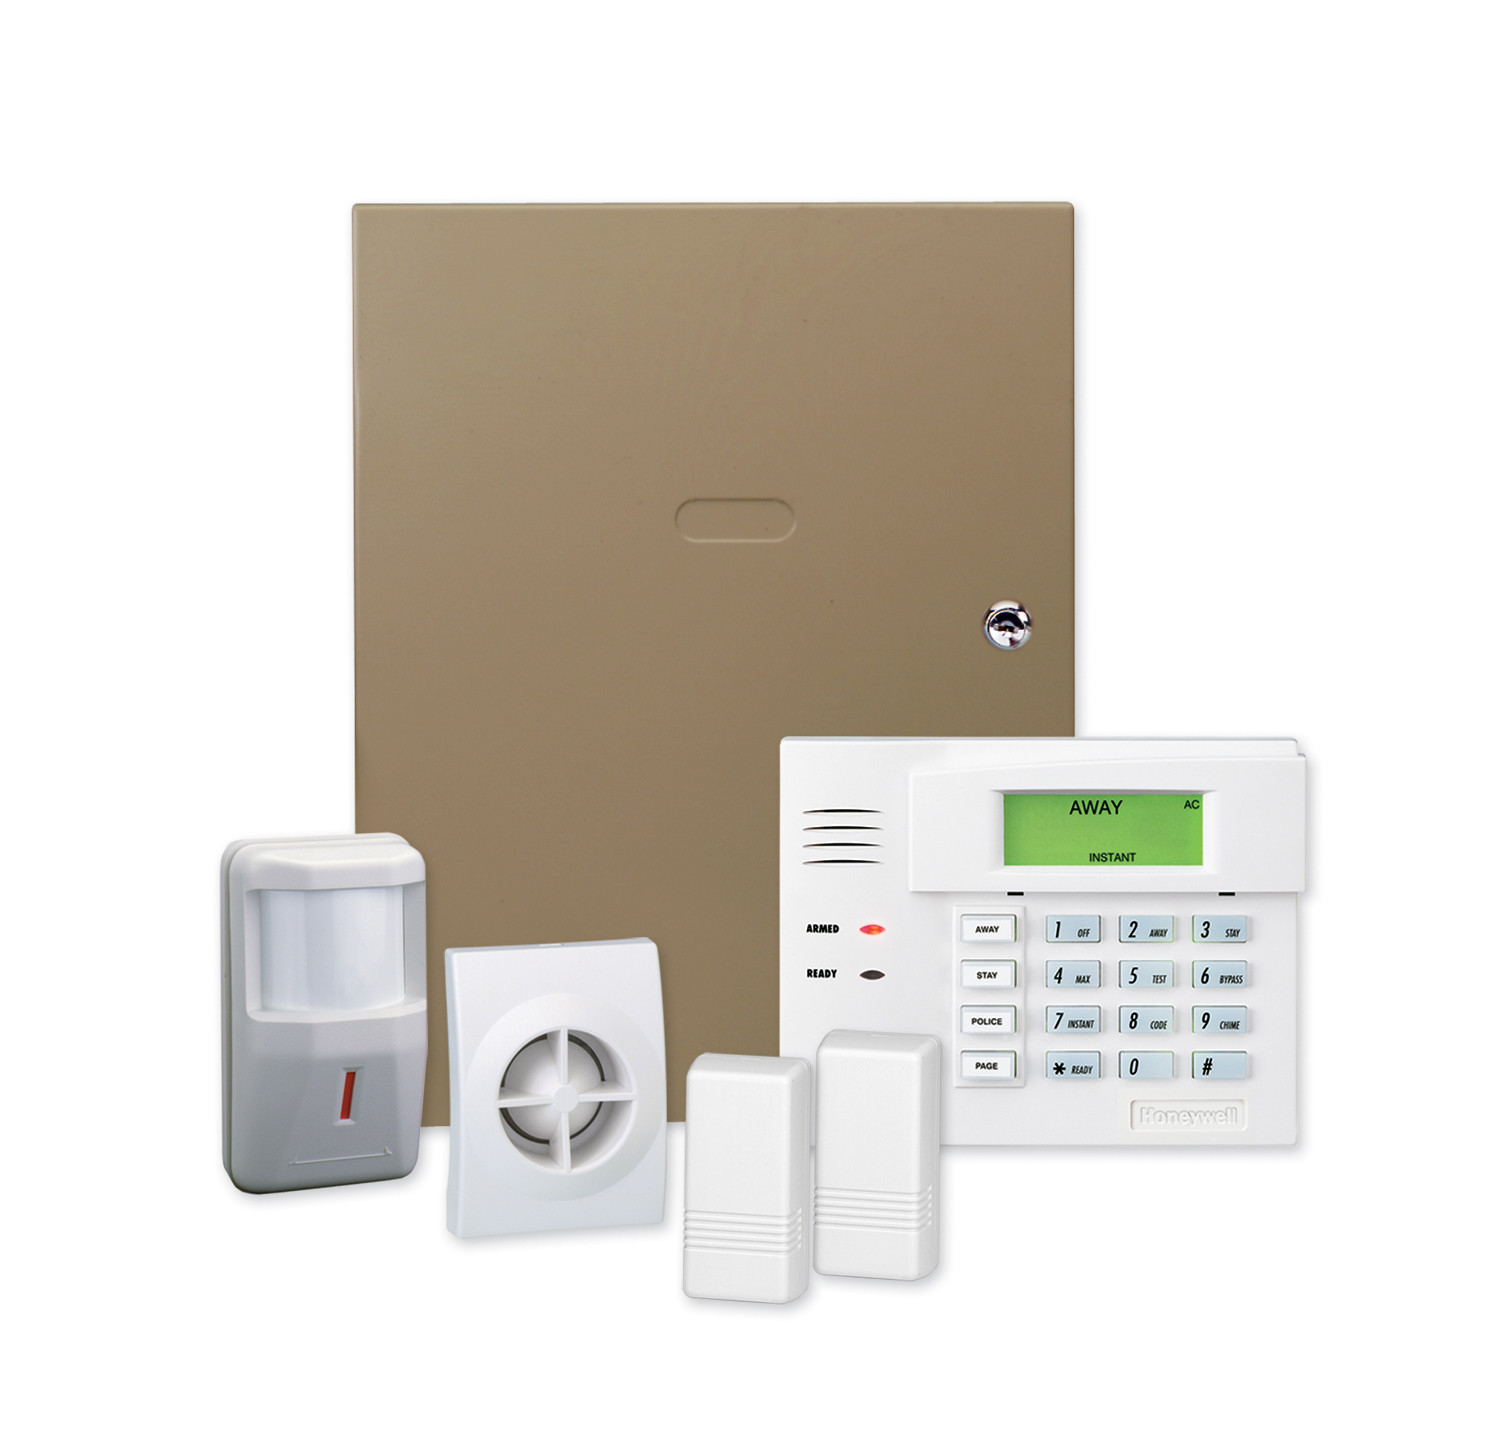 honeywell security systems dealer in kansas city shield security systems. Black Bedroom Furniture Sets. Home Design Ideas